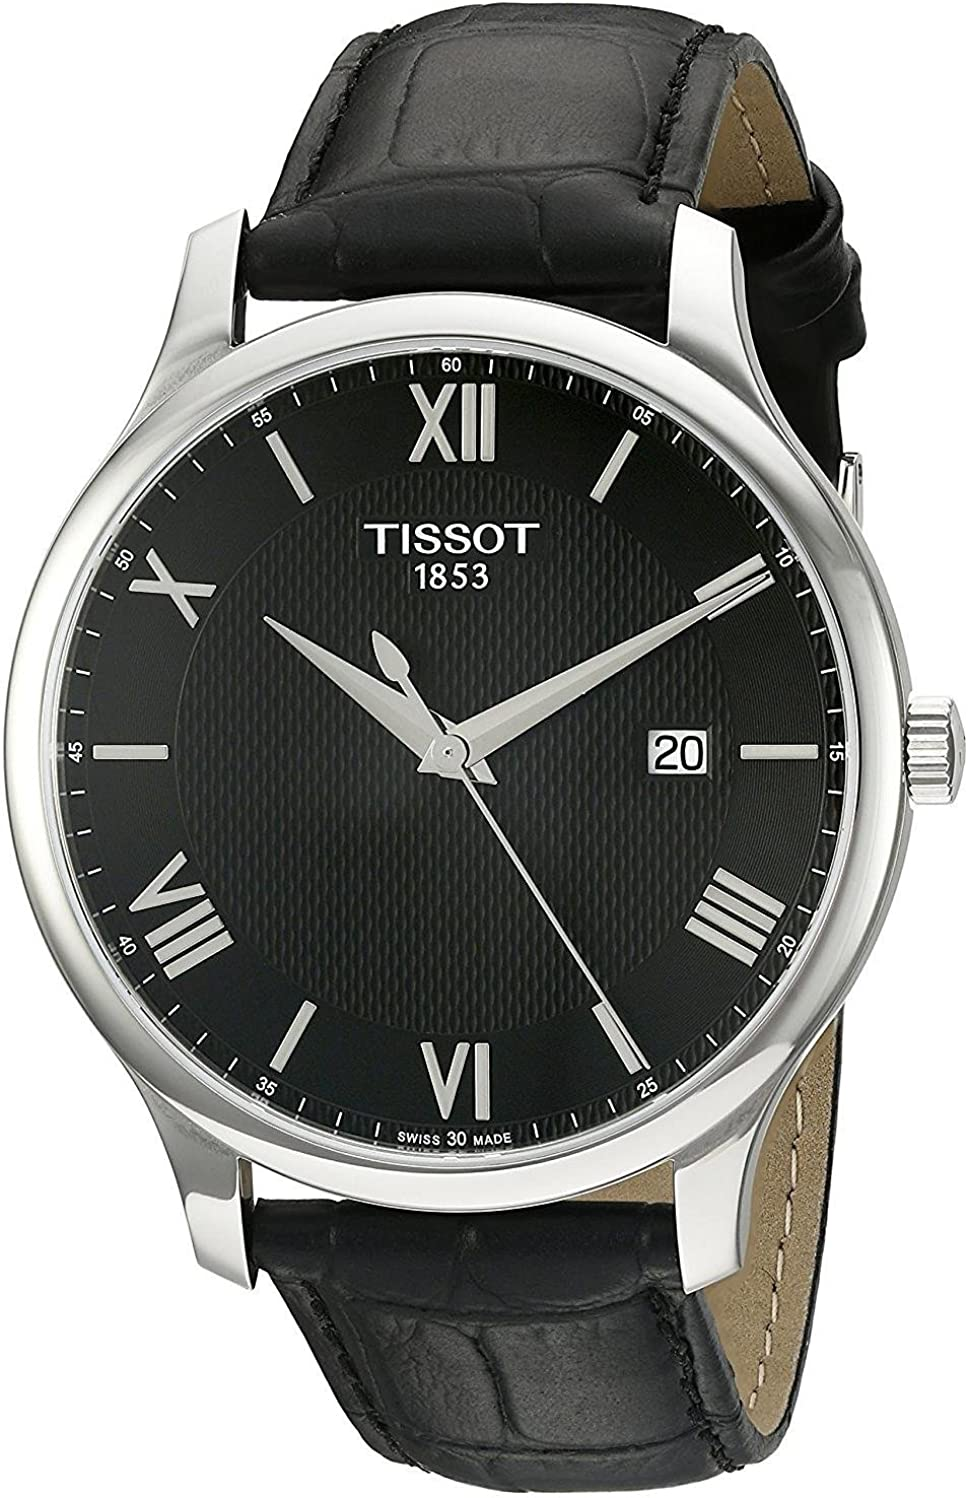 Tissot Men s Tradition Swiss Quartz Stainless Steel and Leather Dress Watch, Color Black Model T0636101605800